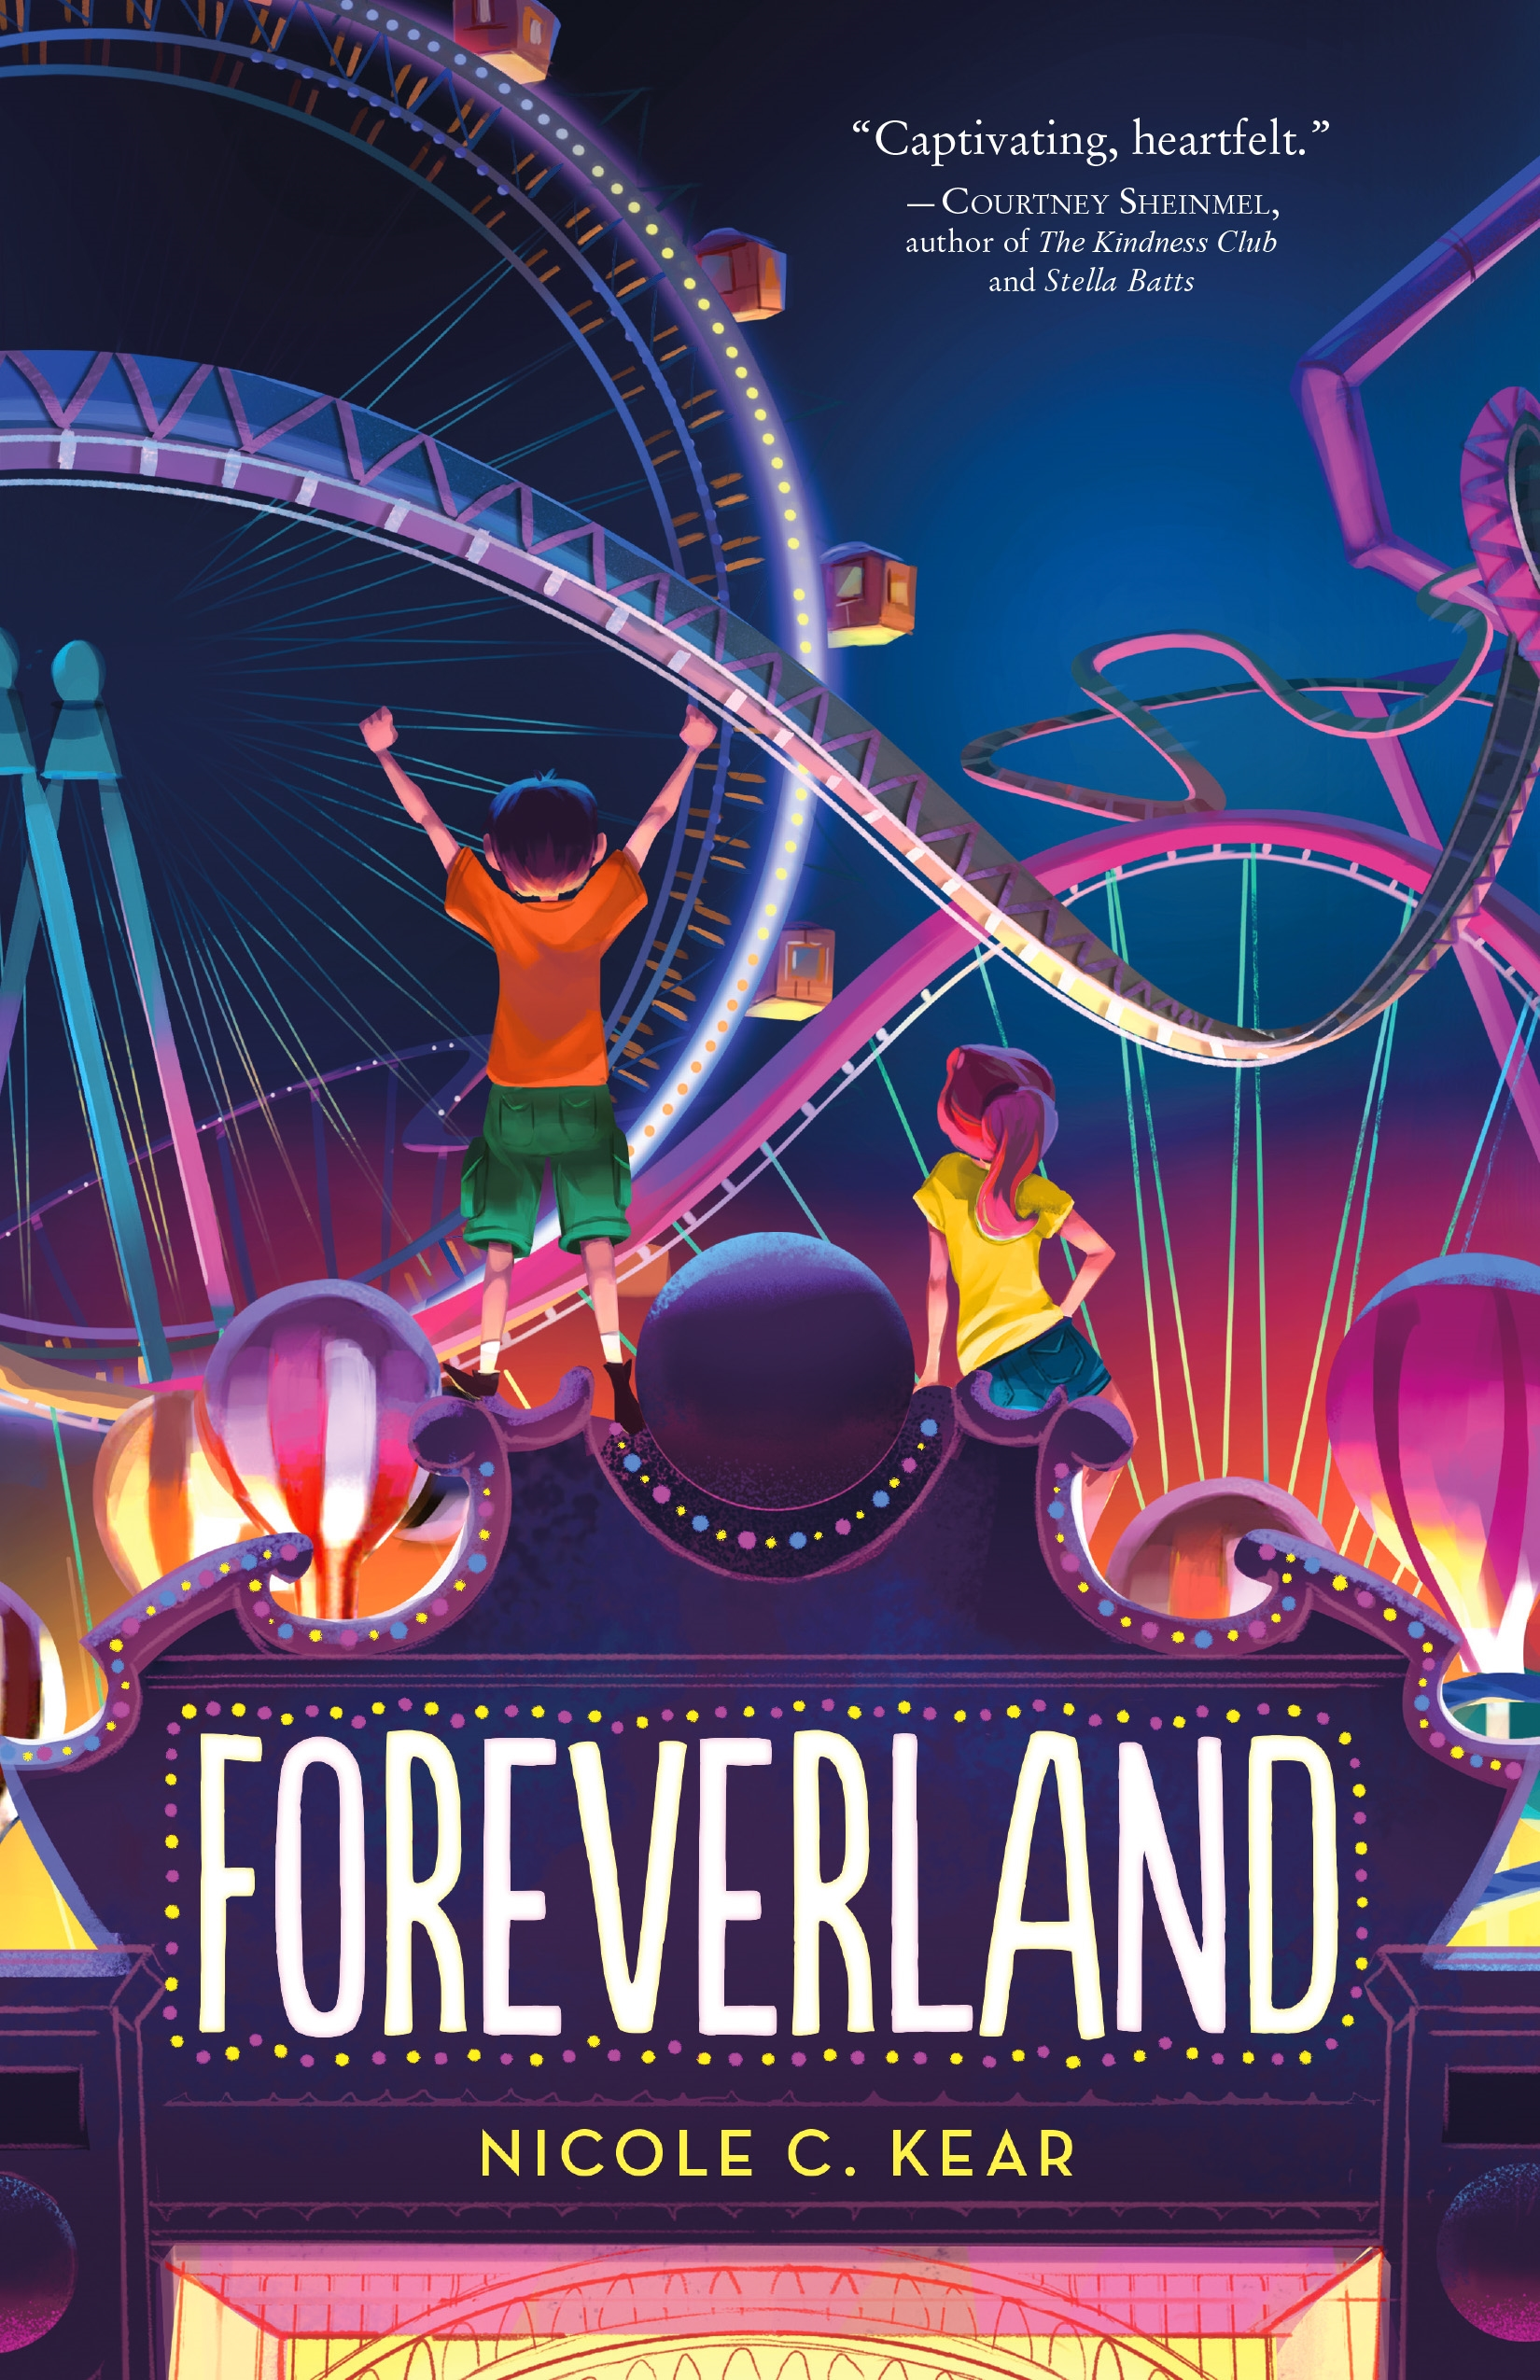 Middle Grade Book Launch: Foreverland by Nicole C. Kear